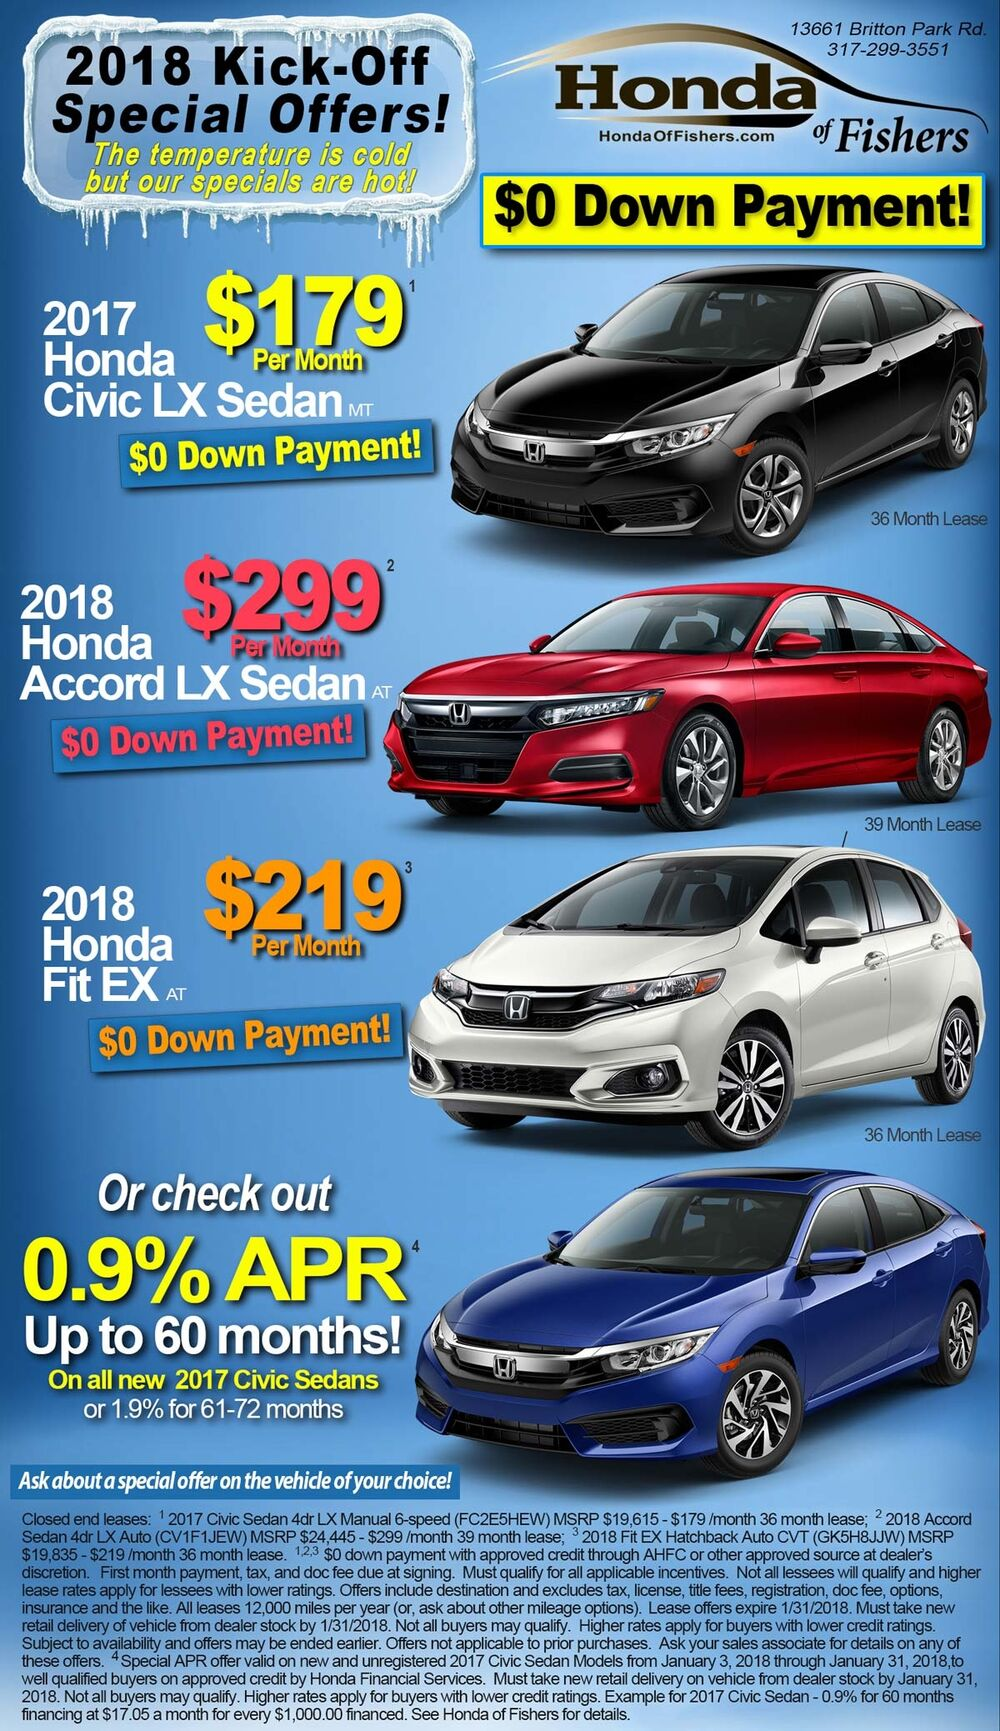 Special offers at Honda of Fishers